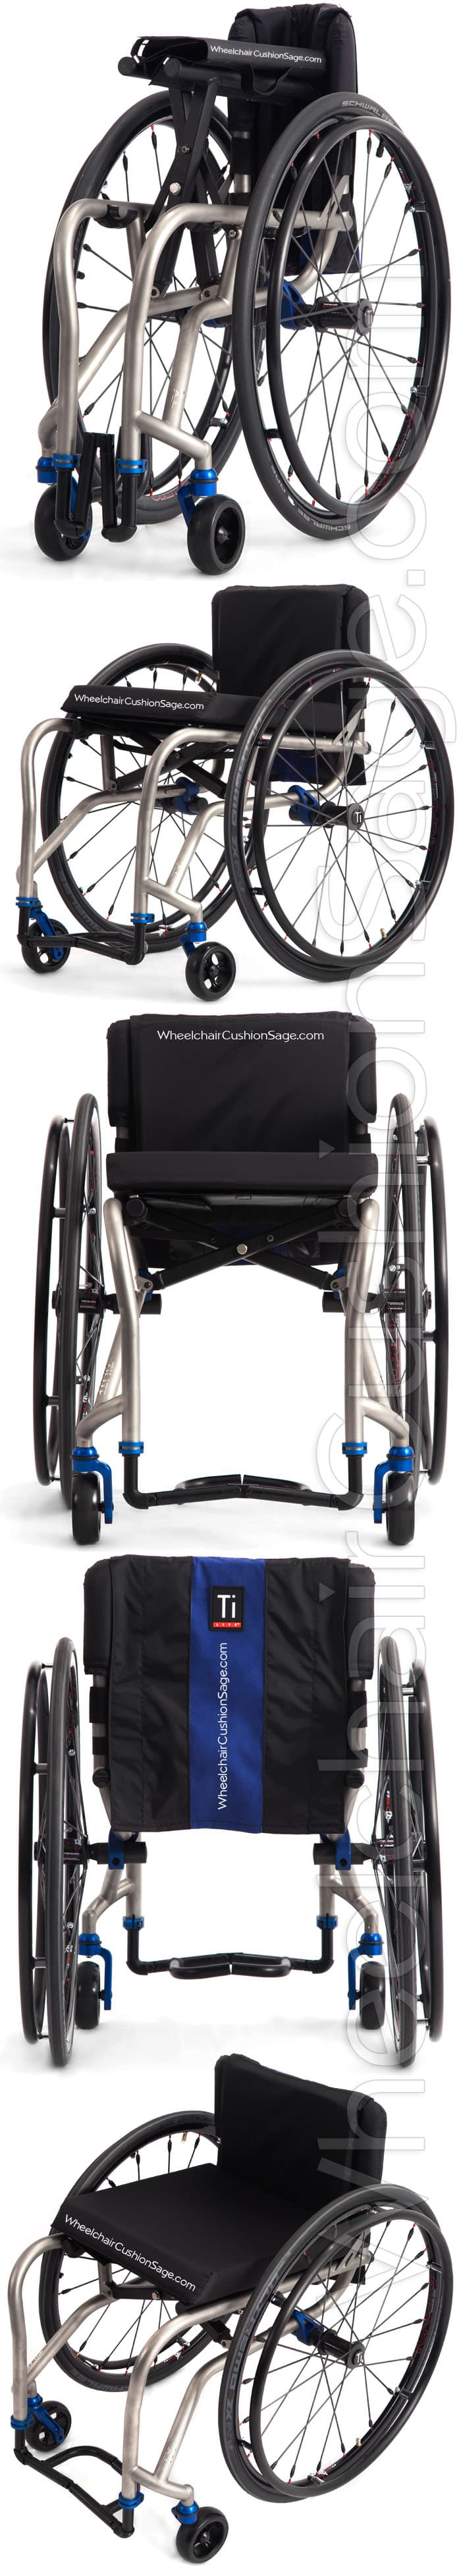 TiLite TX2 Wheelchair Views - Folded, Right, Front, Back, Top